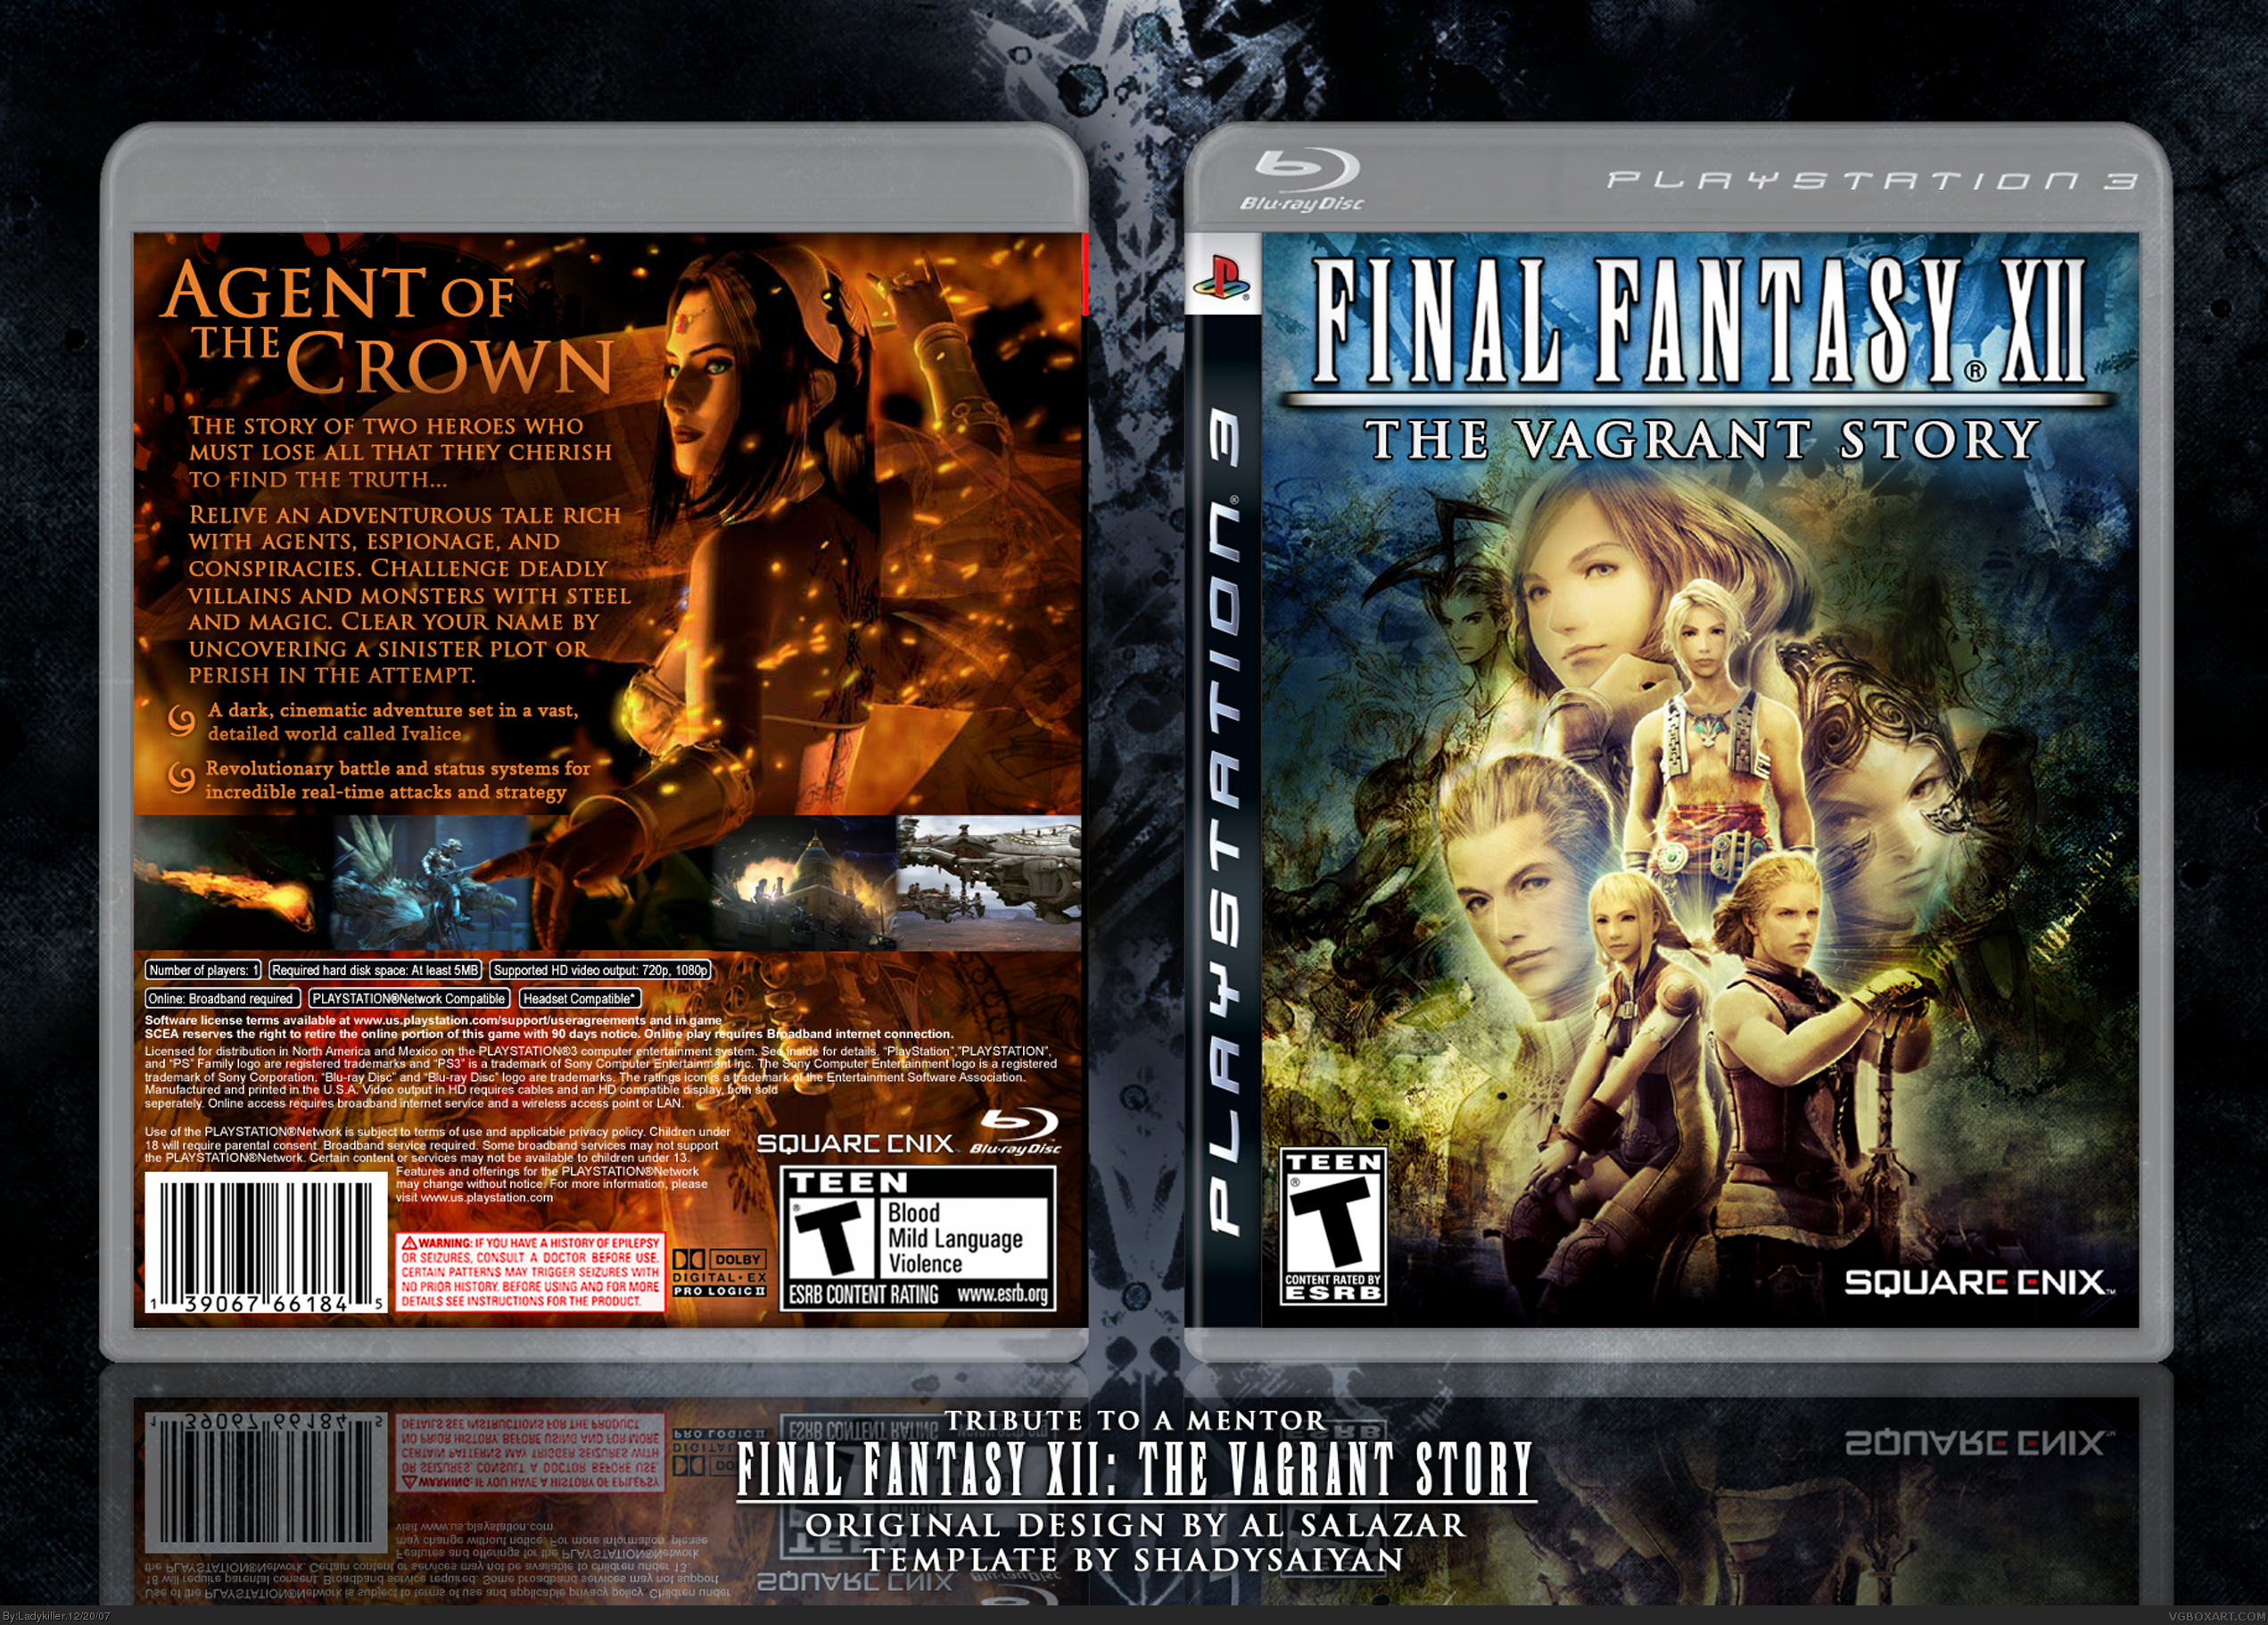 Final Fantasy XII: The Vagrant Story box cover